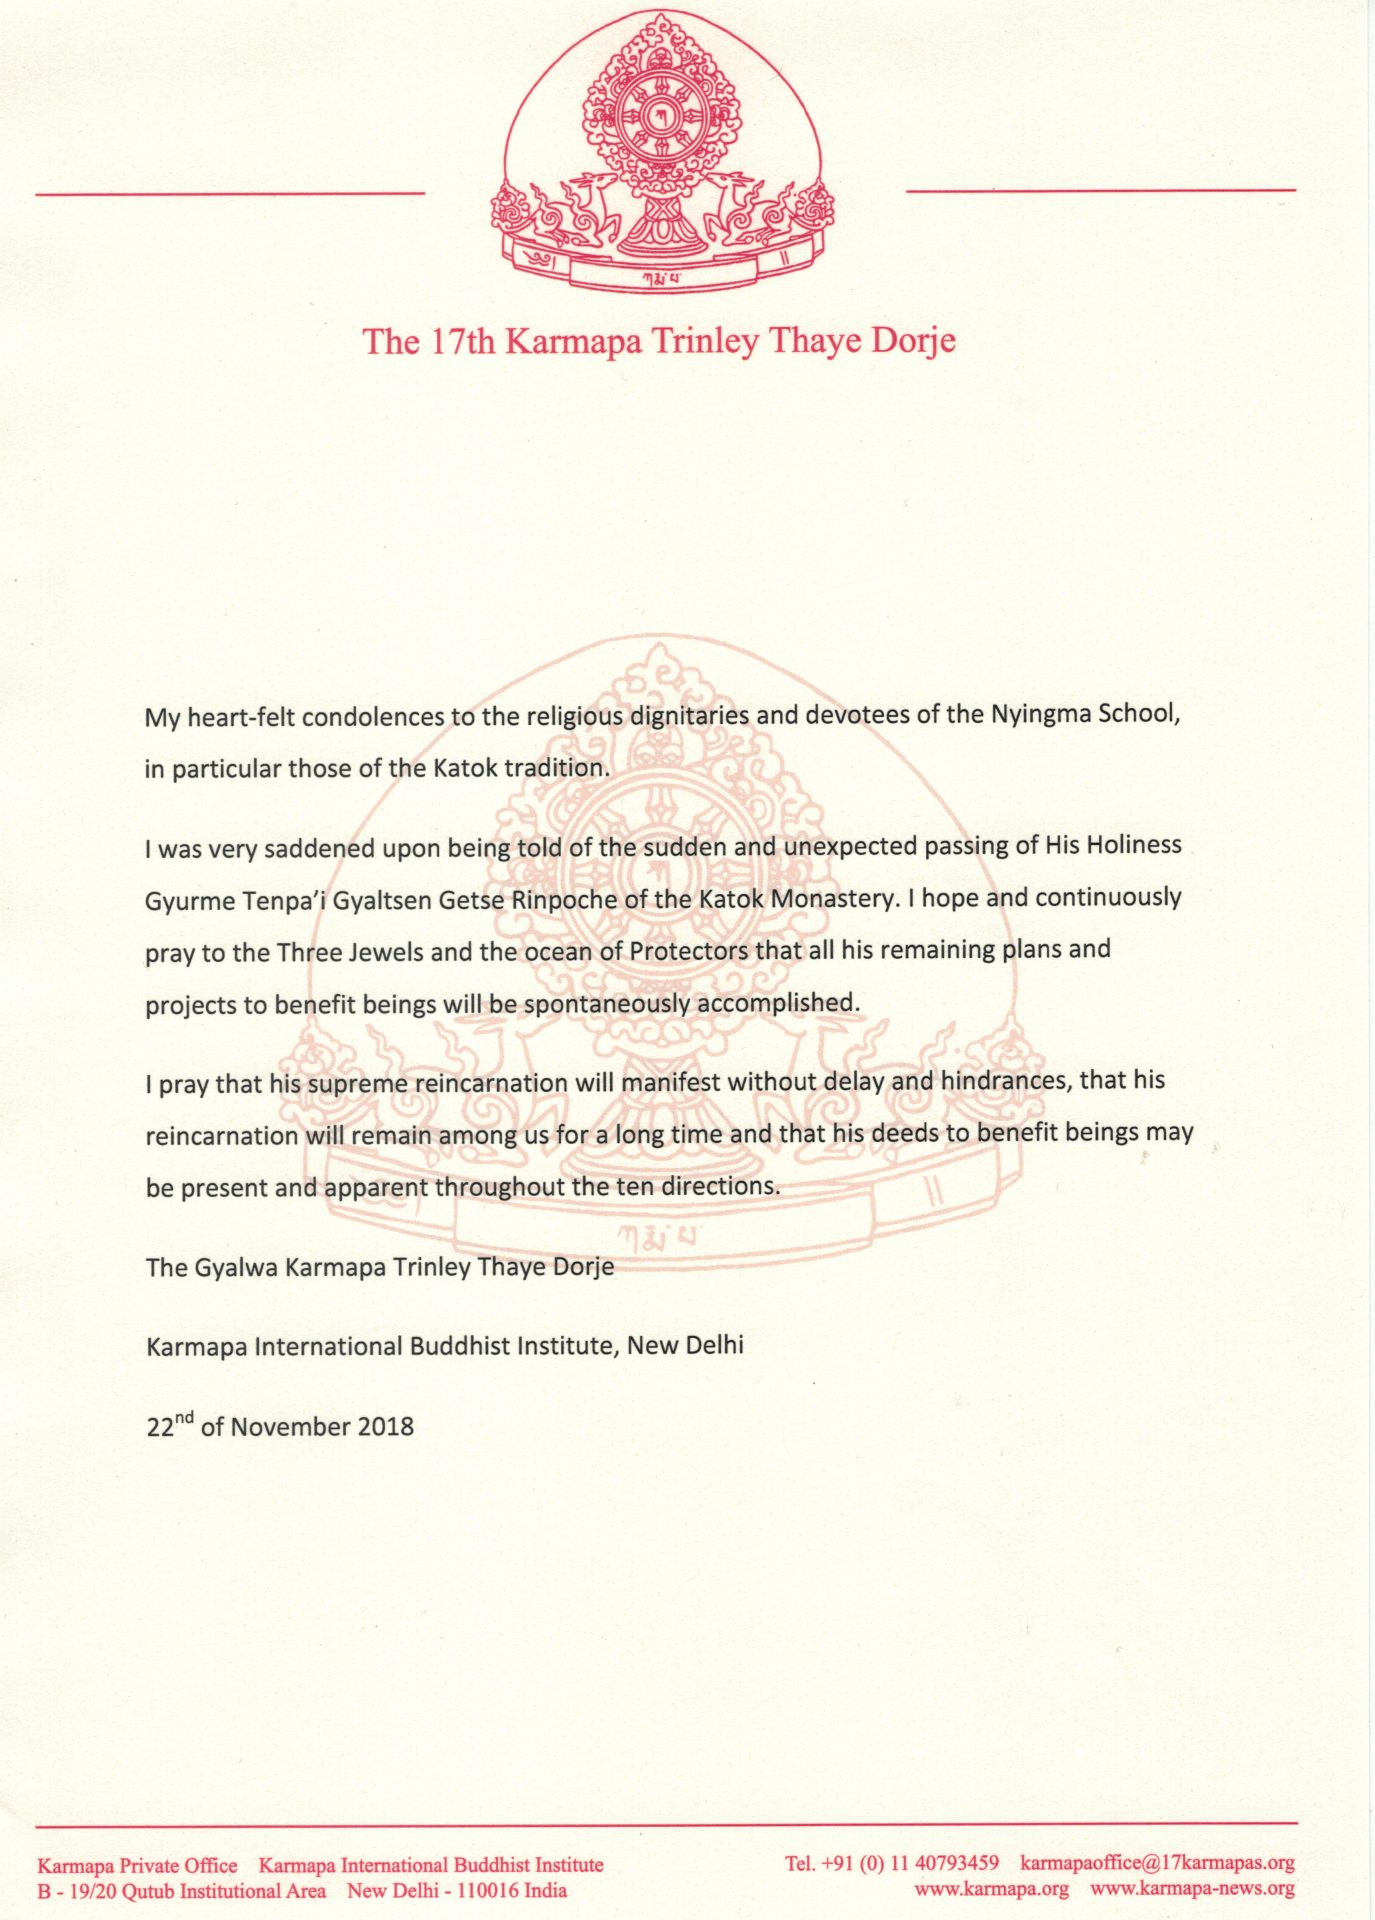 Condolence message from Thaye Dorje, His Holiness the 17th Gyalwa Karmapa, on the passing of Kathok Getse Rinpoche, in English